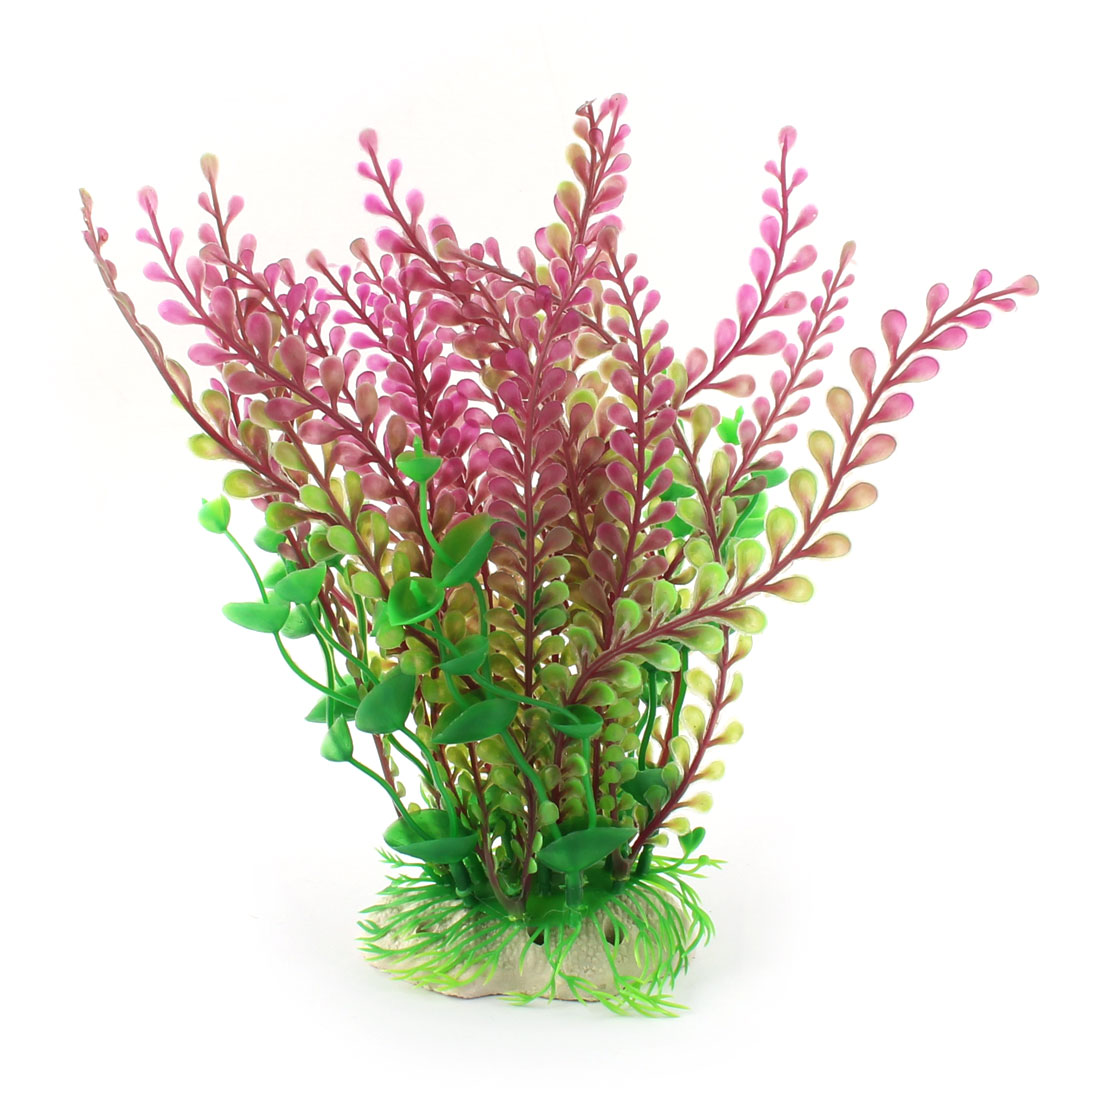 Aquarium Fish Tank Artificial Water Plant Grass Decor Beige Green Purple